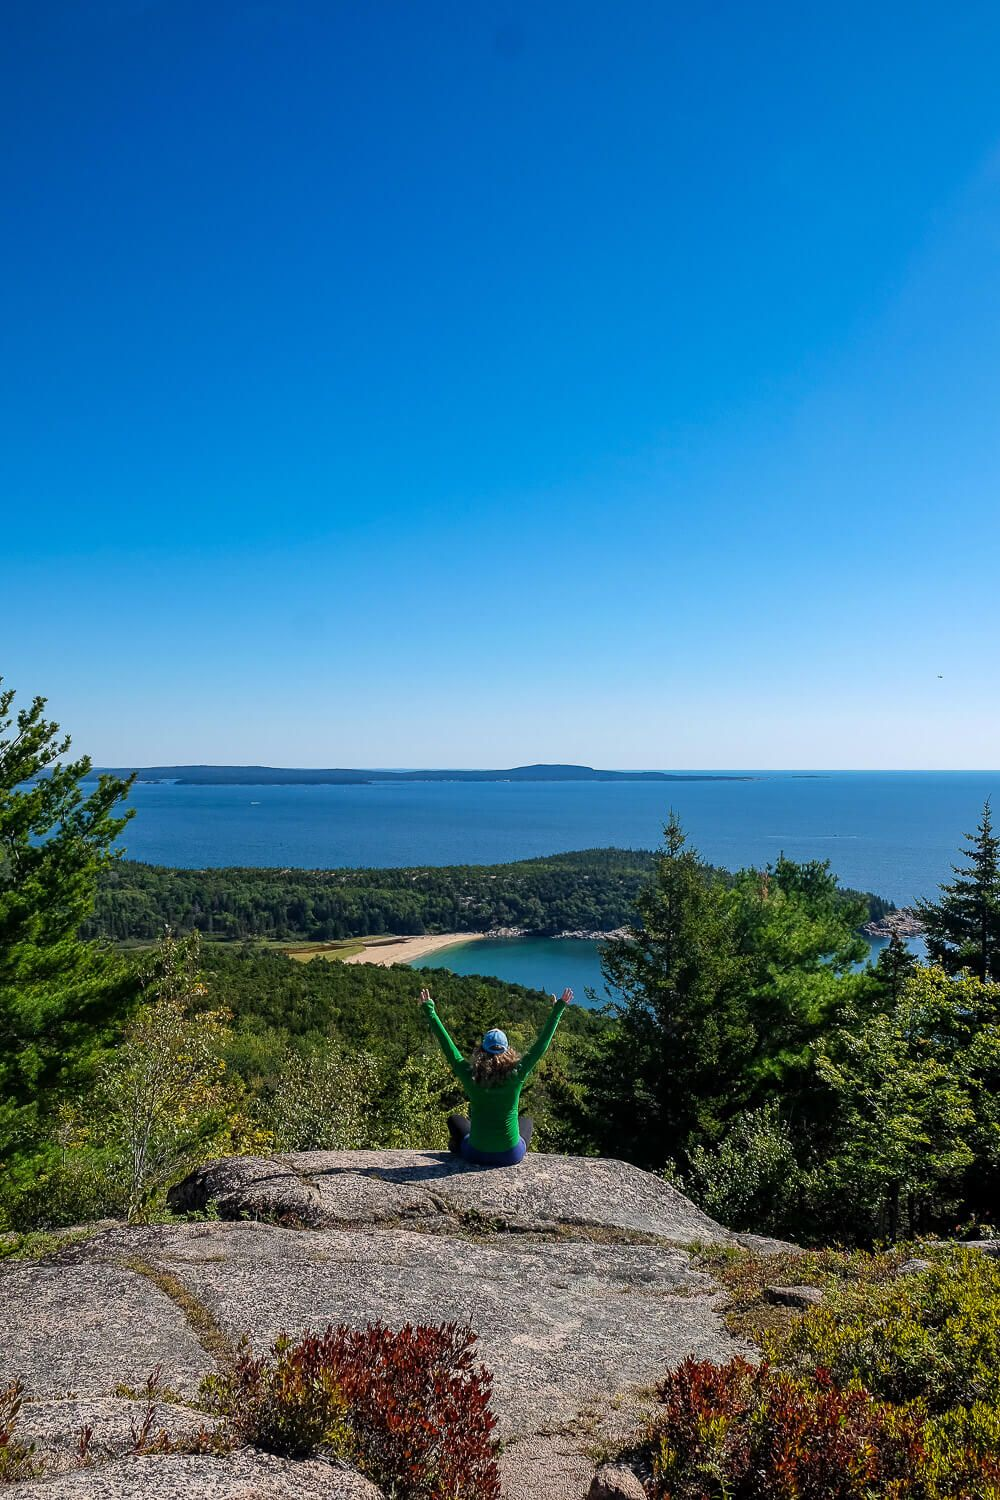 gorham mountain: One day in acadia national park